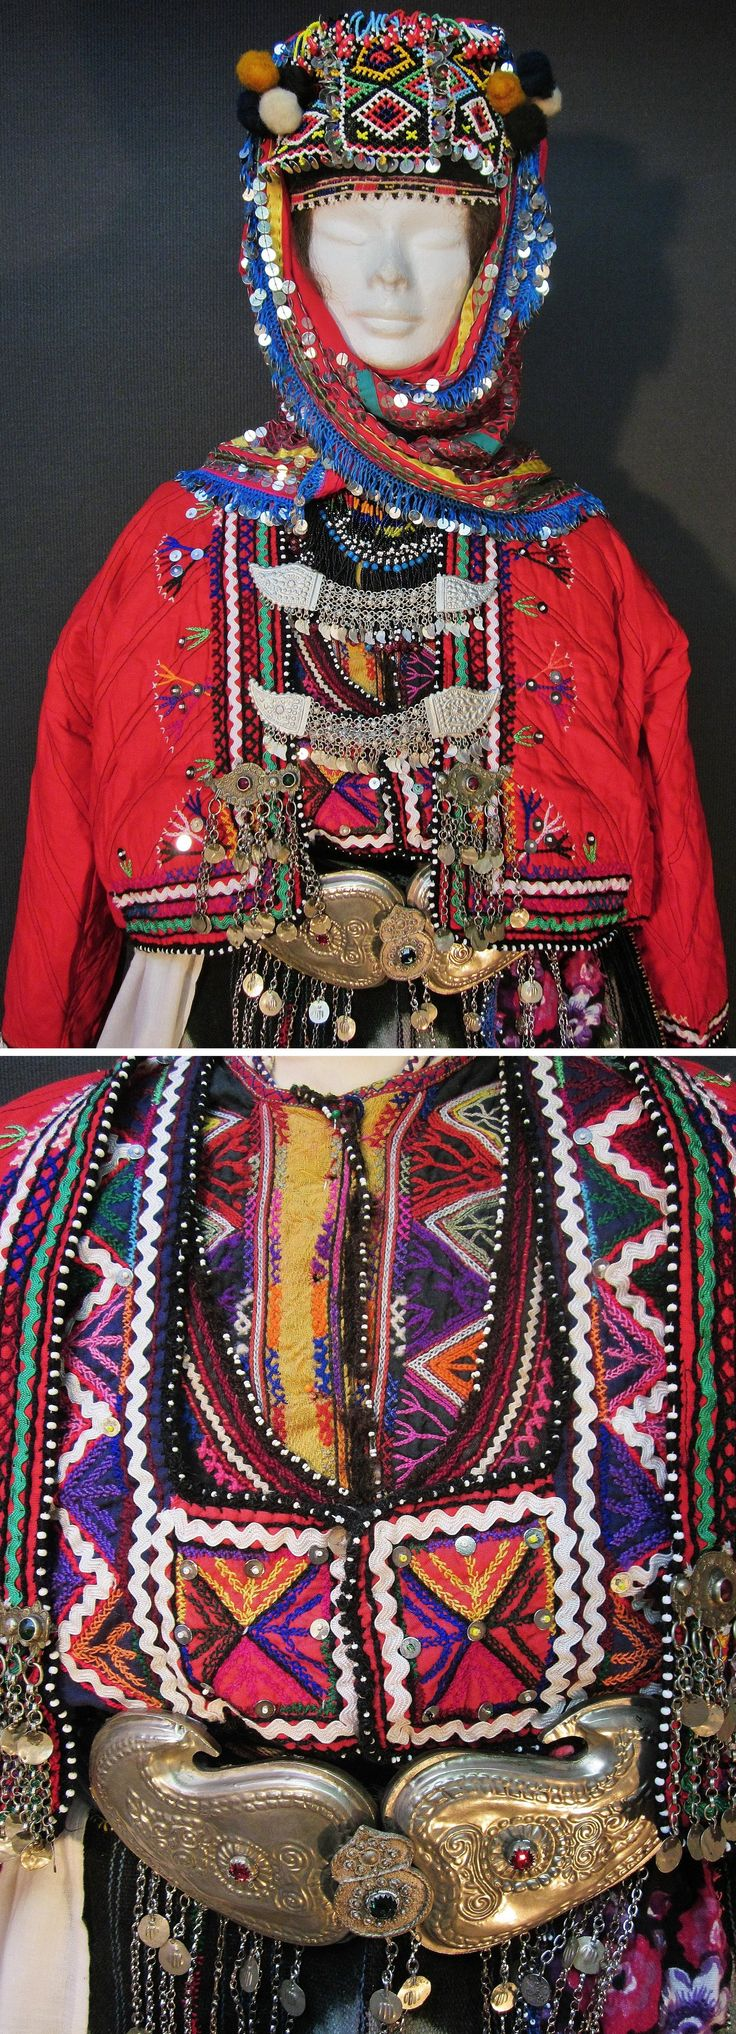 Close-up of a traditional bridal costume from the Karakeçeli (Yörük) villages of the Keles district (south of Bursa).  Village (rural) style, ca. mid-20th century.  Below: the three layers of adorned garments that cover the breast (the jewels were removed, to offer better sight): a 'gömlek' (shirt), an 'iç yelek' (inner bodice) and a 'dış yelek' (outer bodice).  Over these three, a fourth garment is worn: the red 'güdük' (quilted vest).  (Kavak Costume Collection - Antwerpen/Belgium).